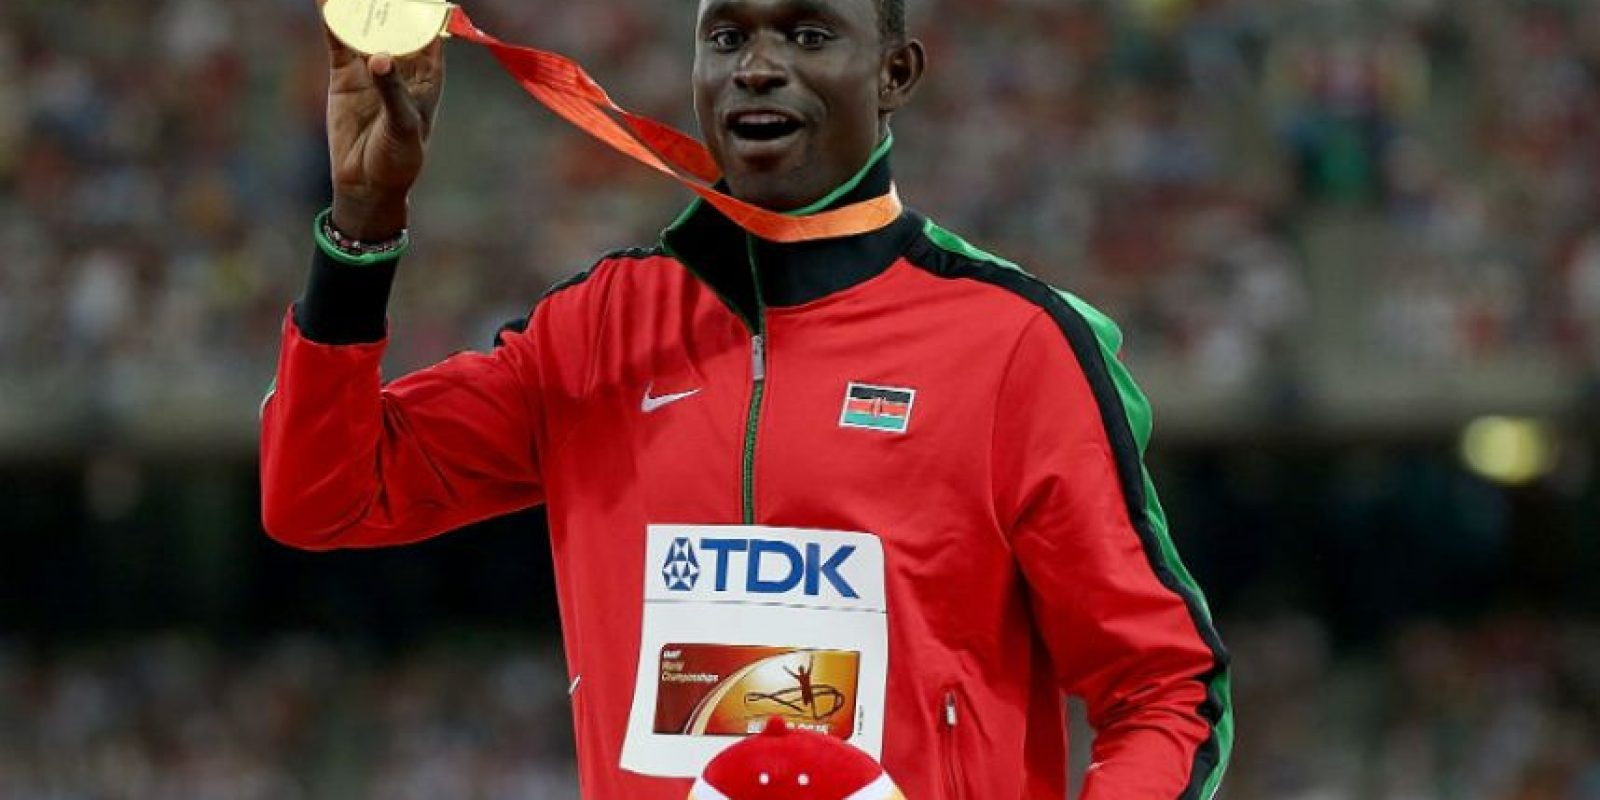 David Rudisha Foto: Getty Images